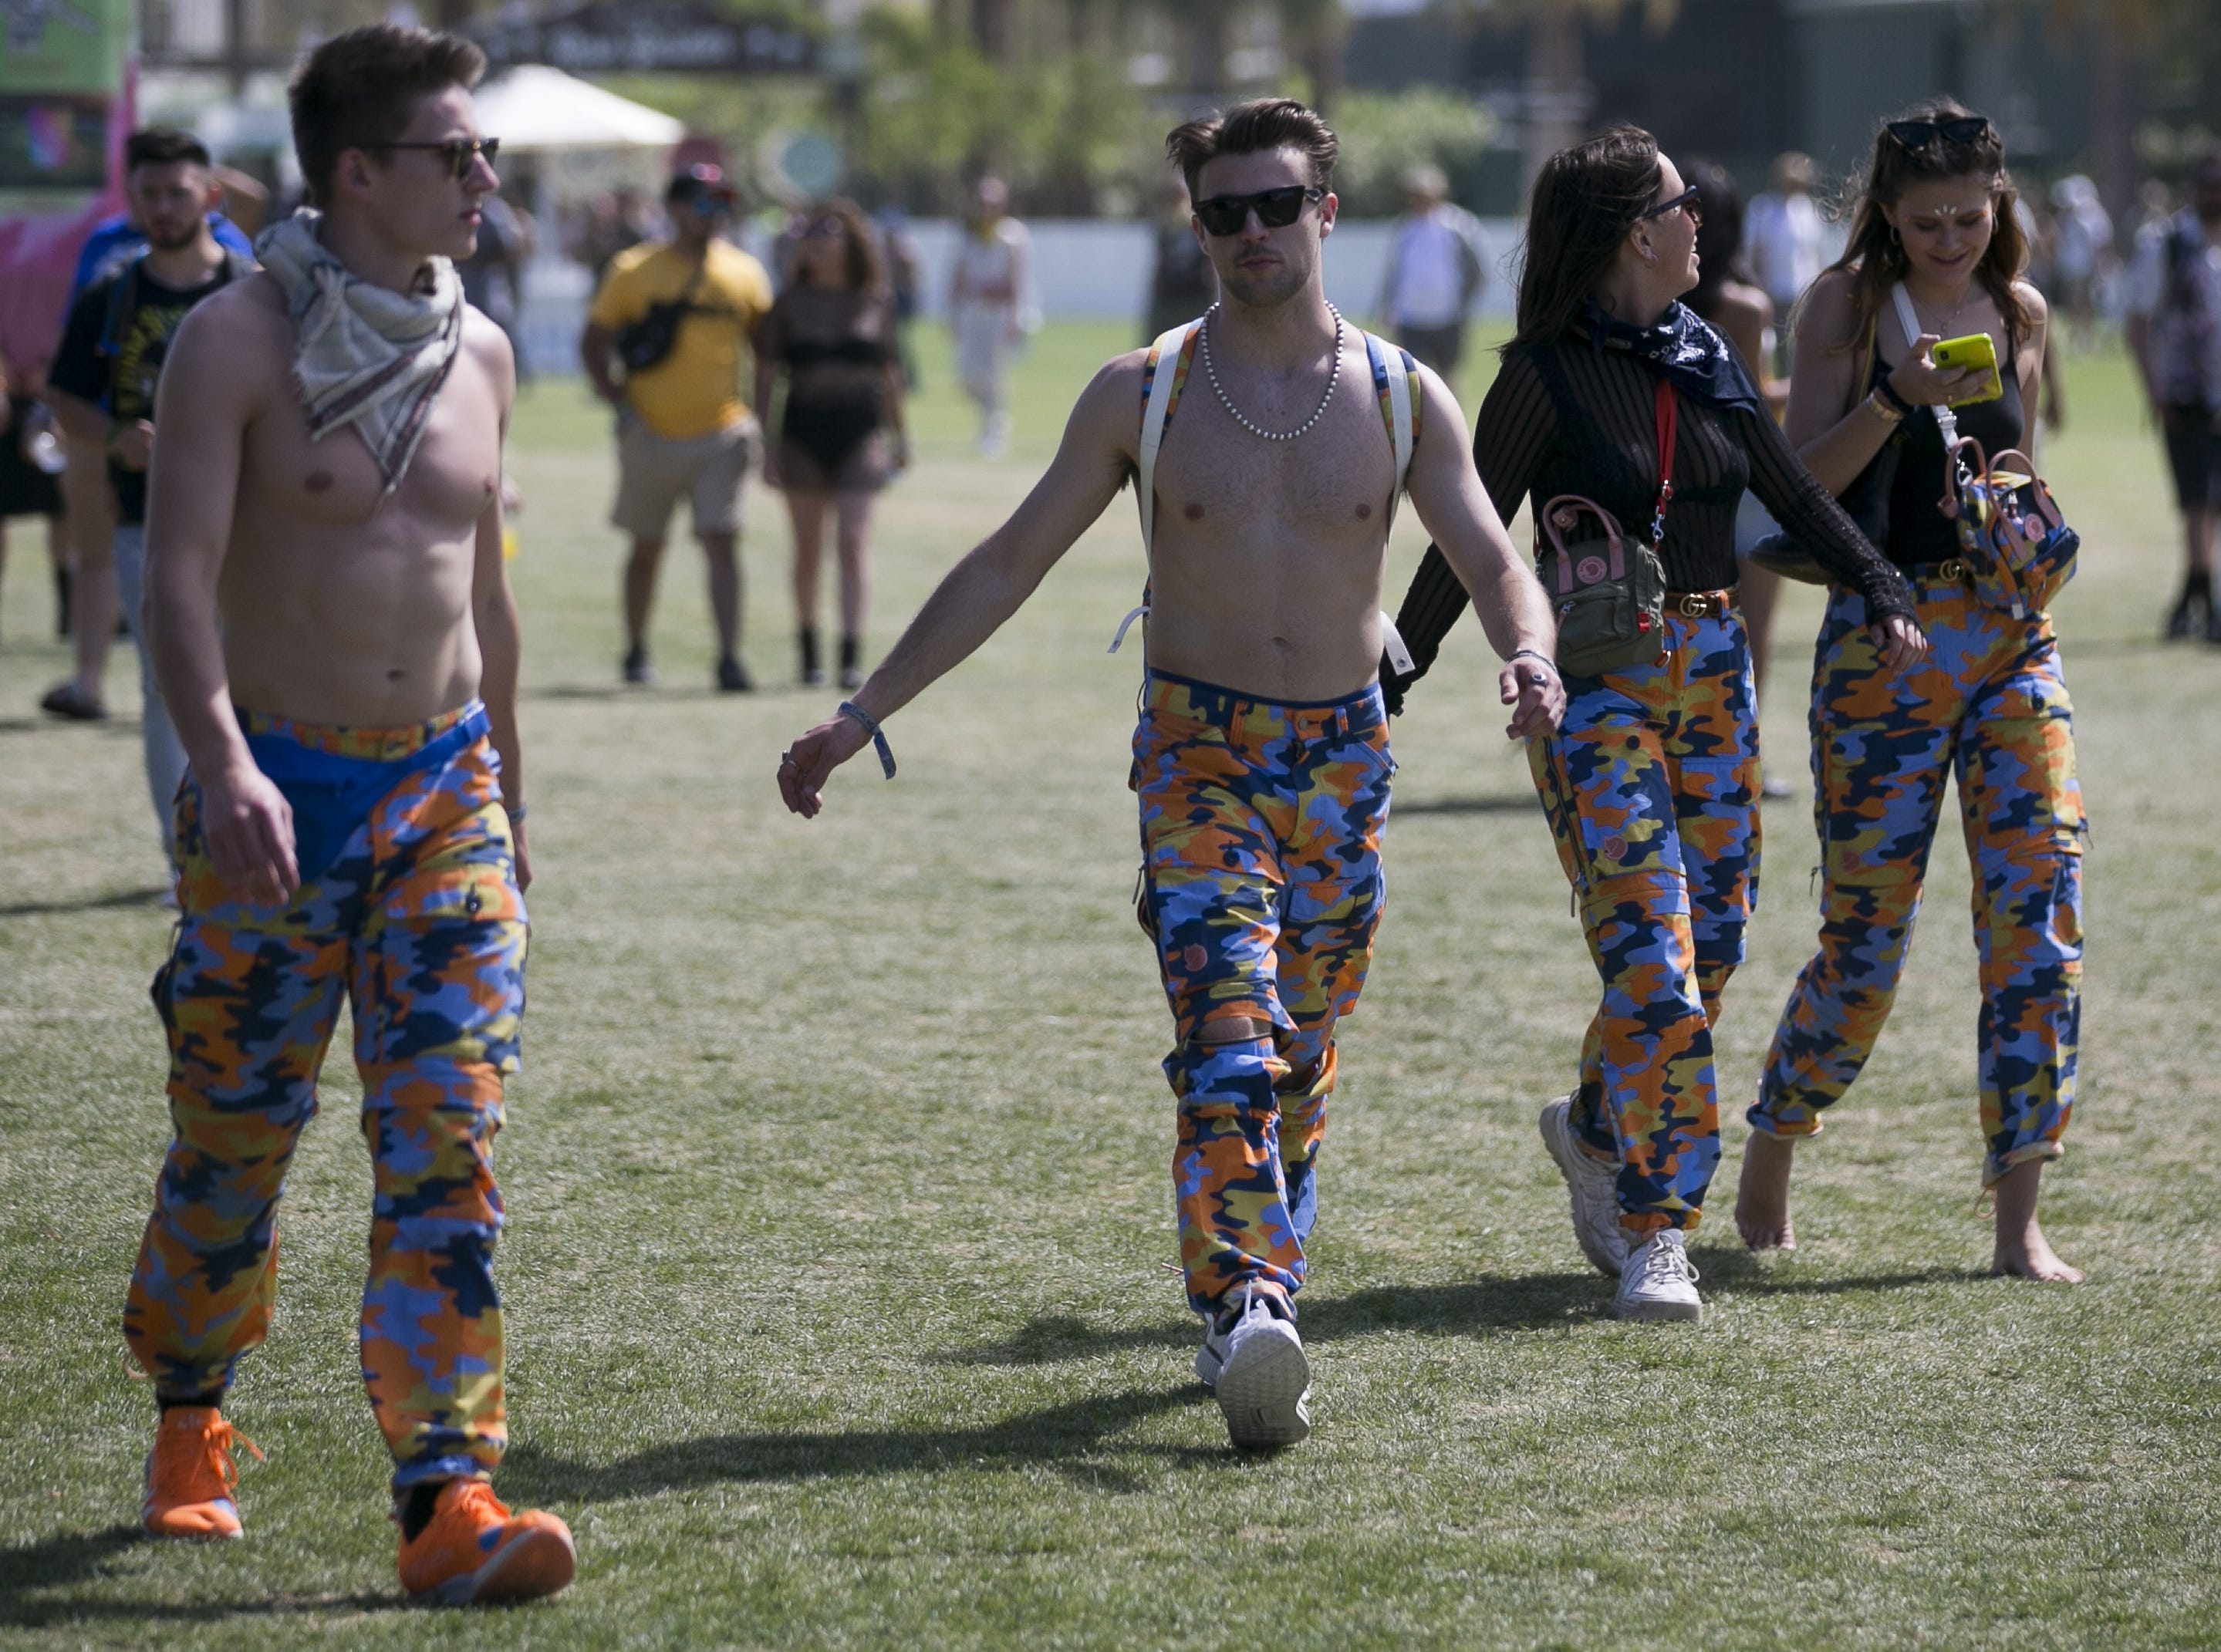 Festival goers walk through the festival grounds at the Coachella Valley Music and Arts Festival in Indio, Calif. on Fri. April 12, 2019.